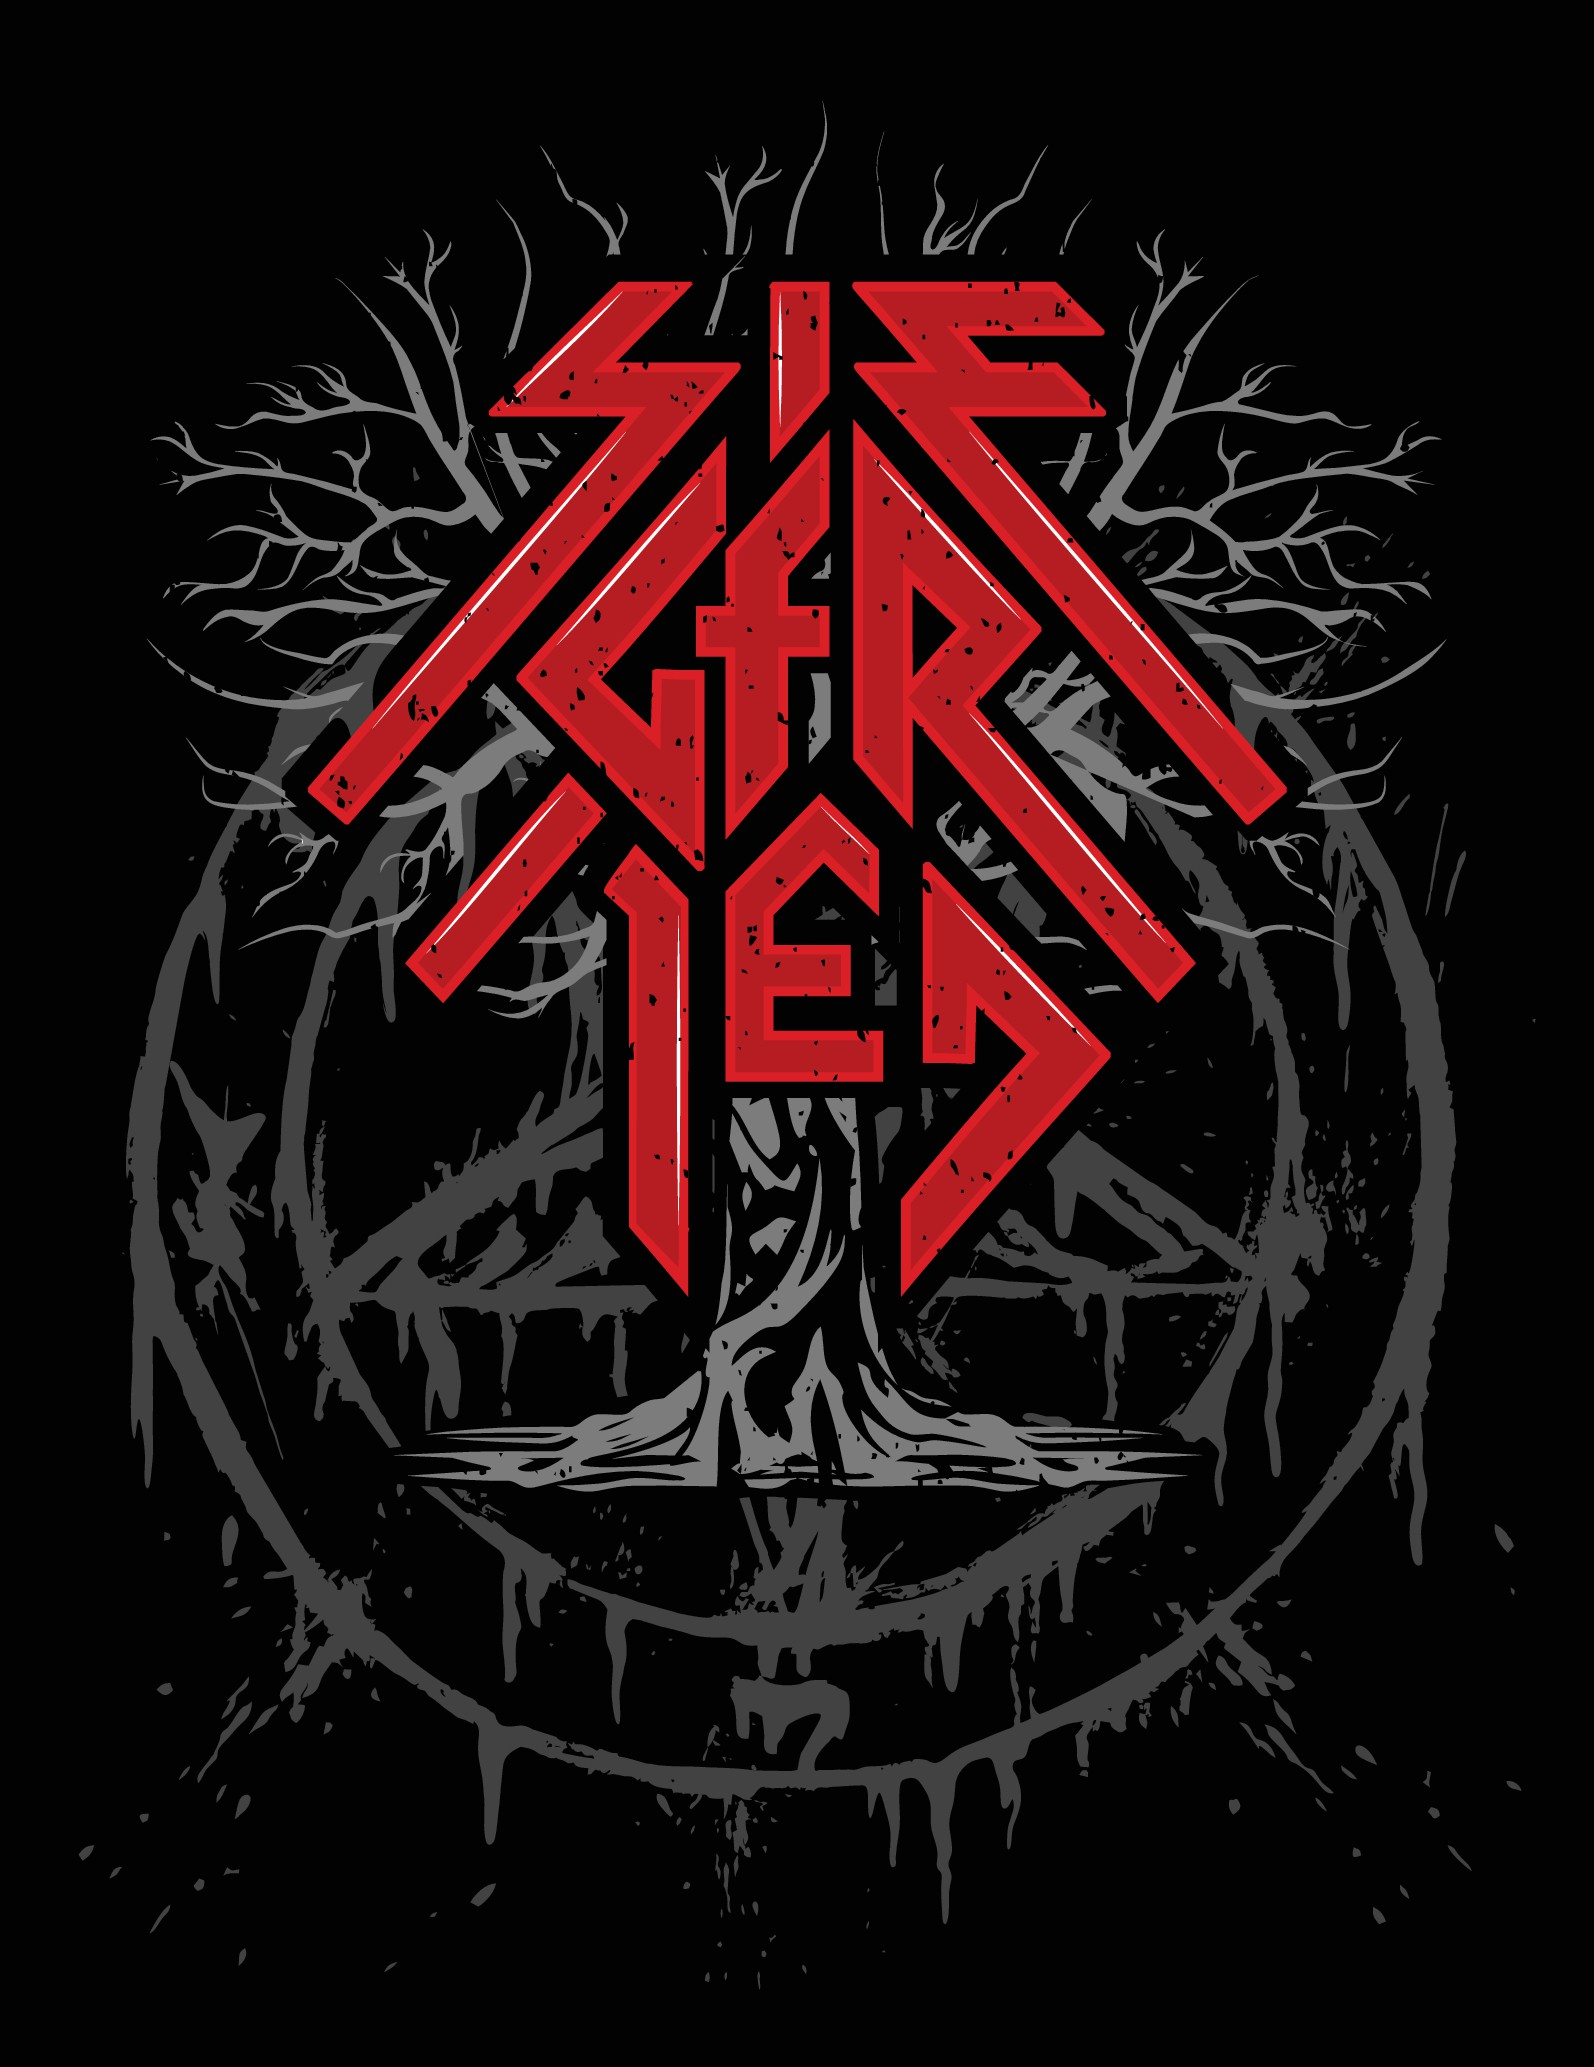 Create a 80s TRASH METAL version of our logo to put on a T-Shirt